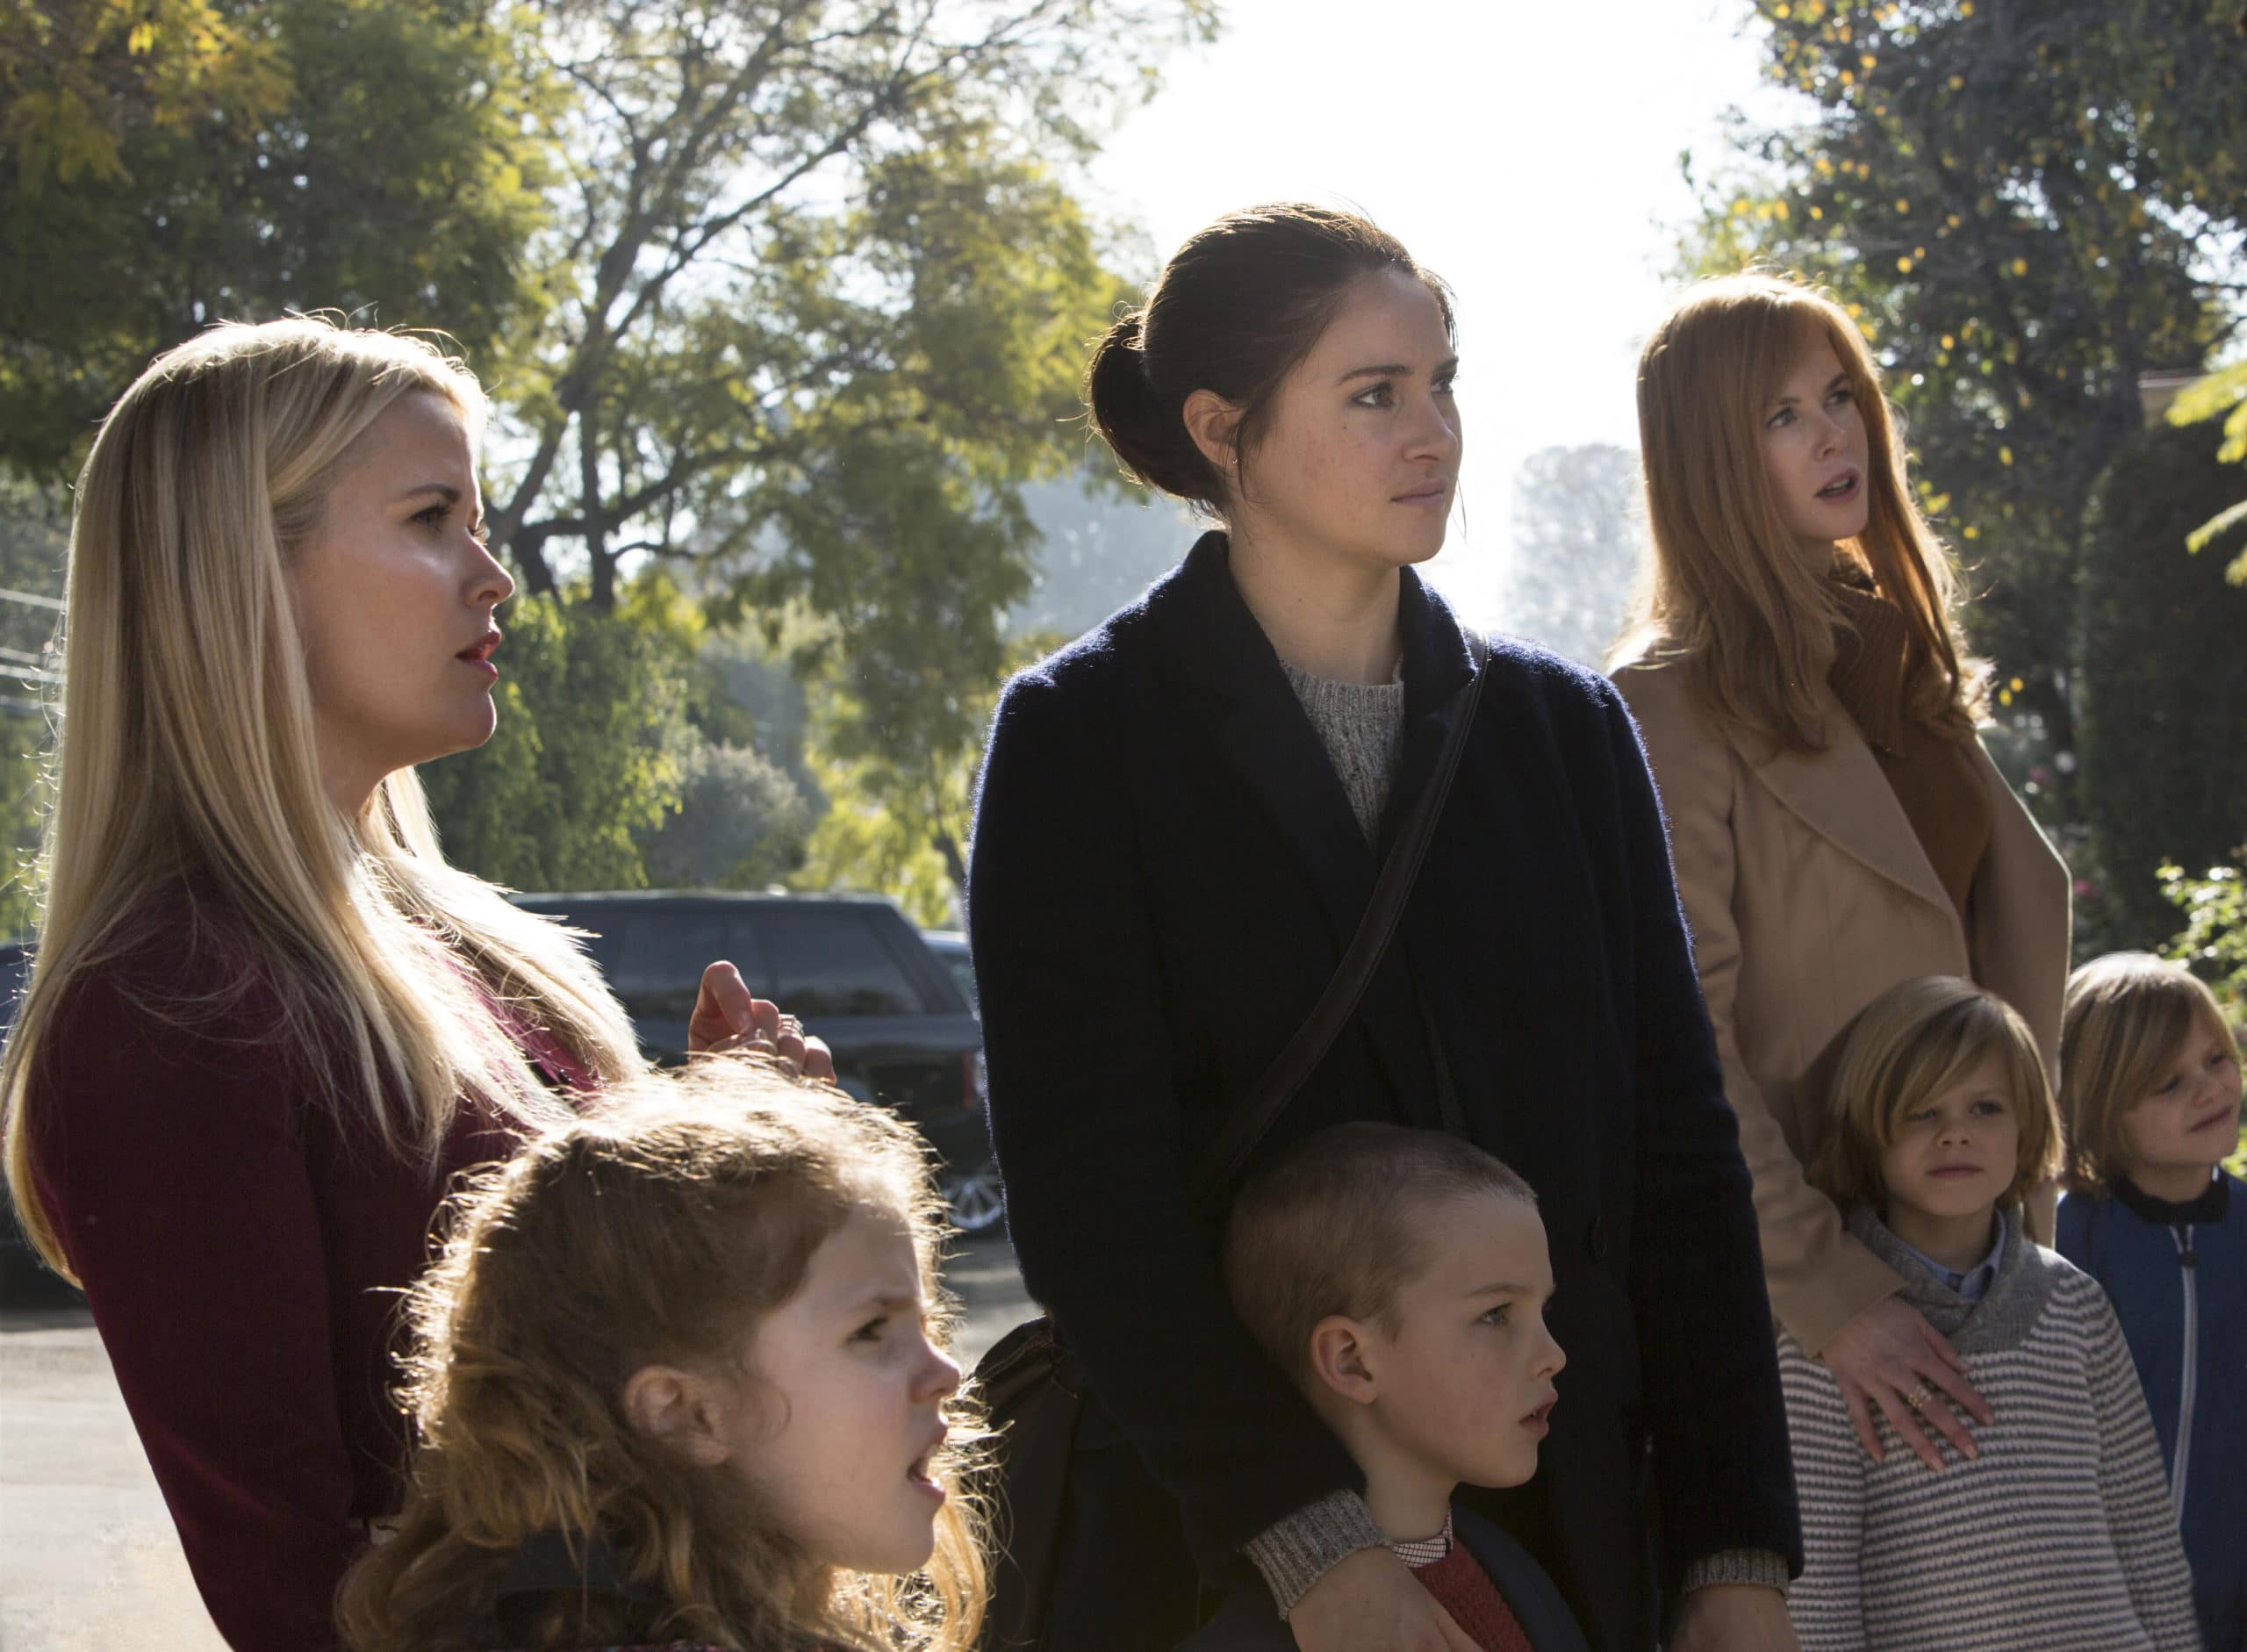 Big Little Lies. Instead of getting down and out about having to shelter in place away from your girl squad, have a girls night in and get lost in these Top 10 binge worthy female-centric TV series that have strong female leads and will give you the girl-power you have been missing!